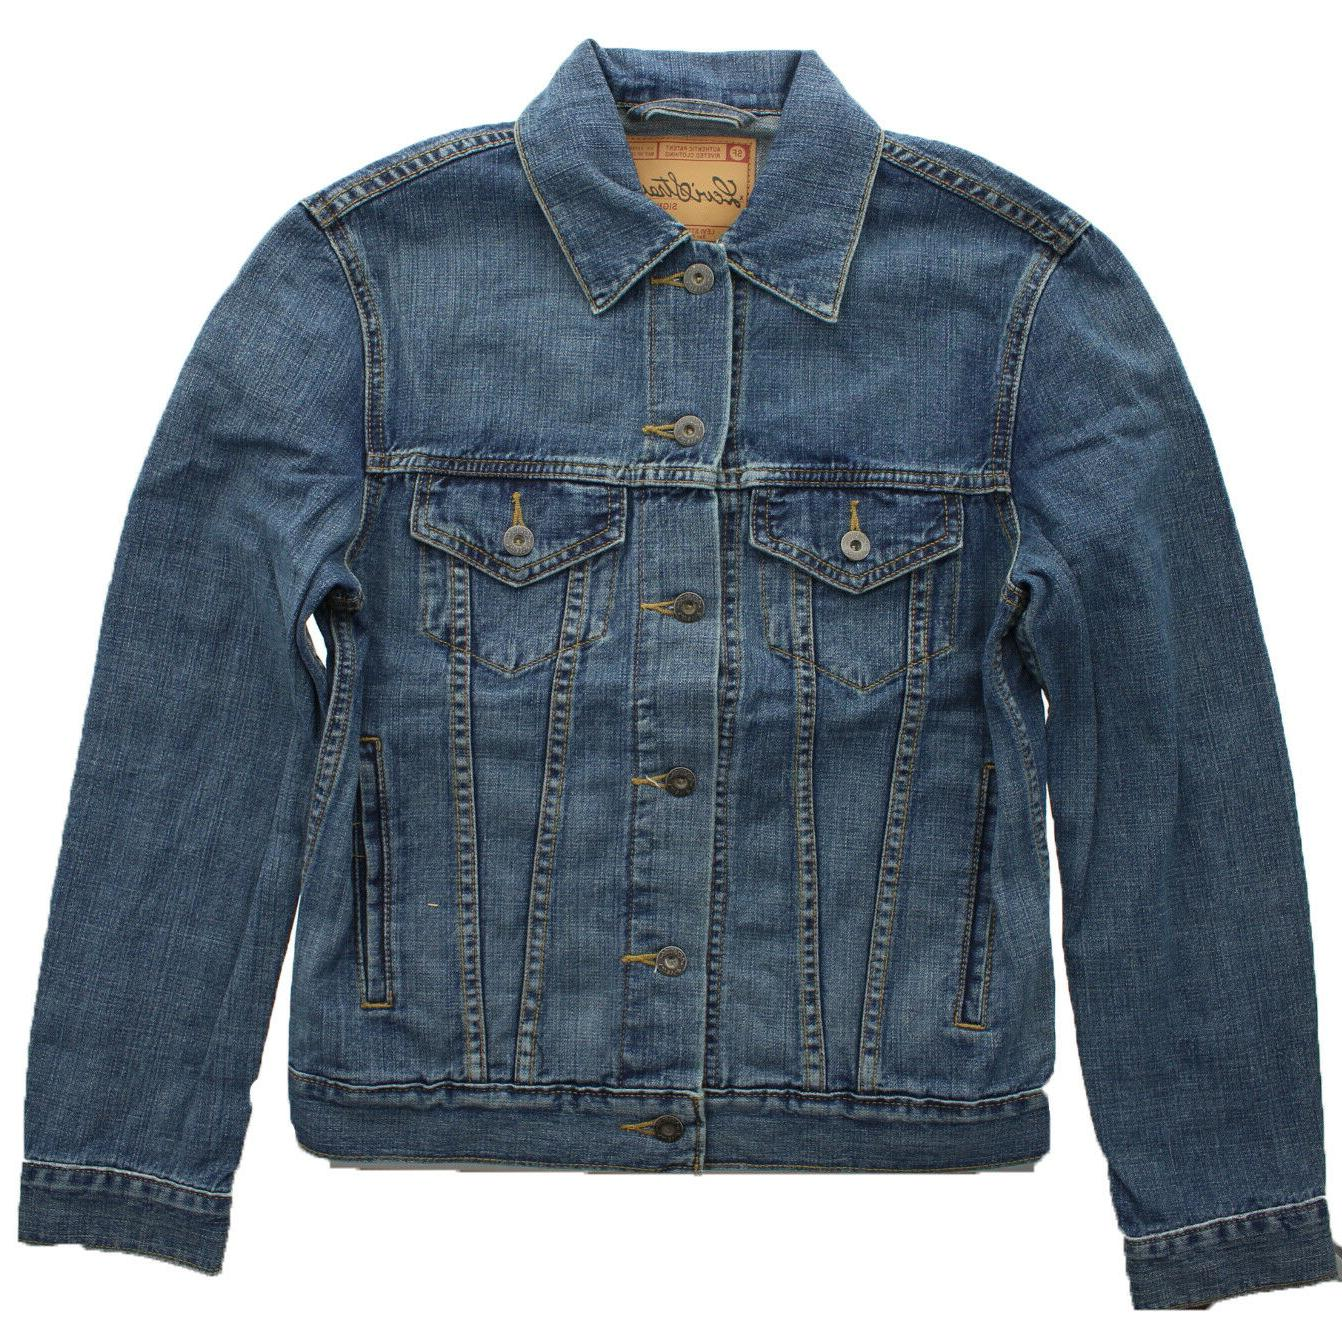 Levi's Jean Jackets, Levi Strauss Signature Denim